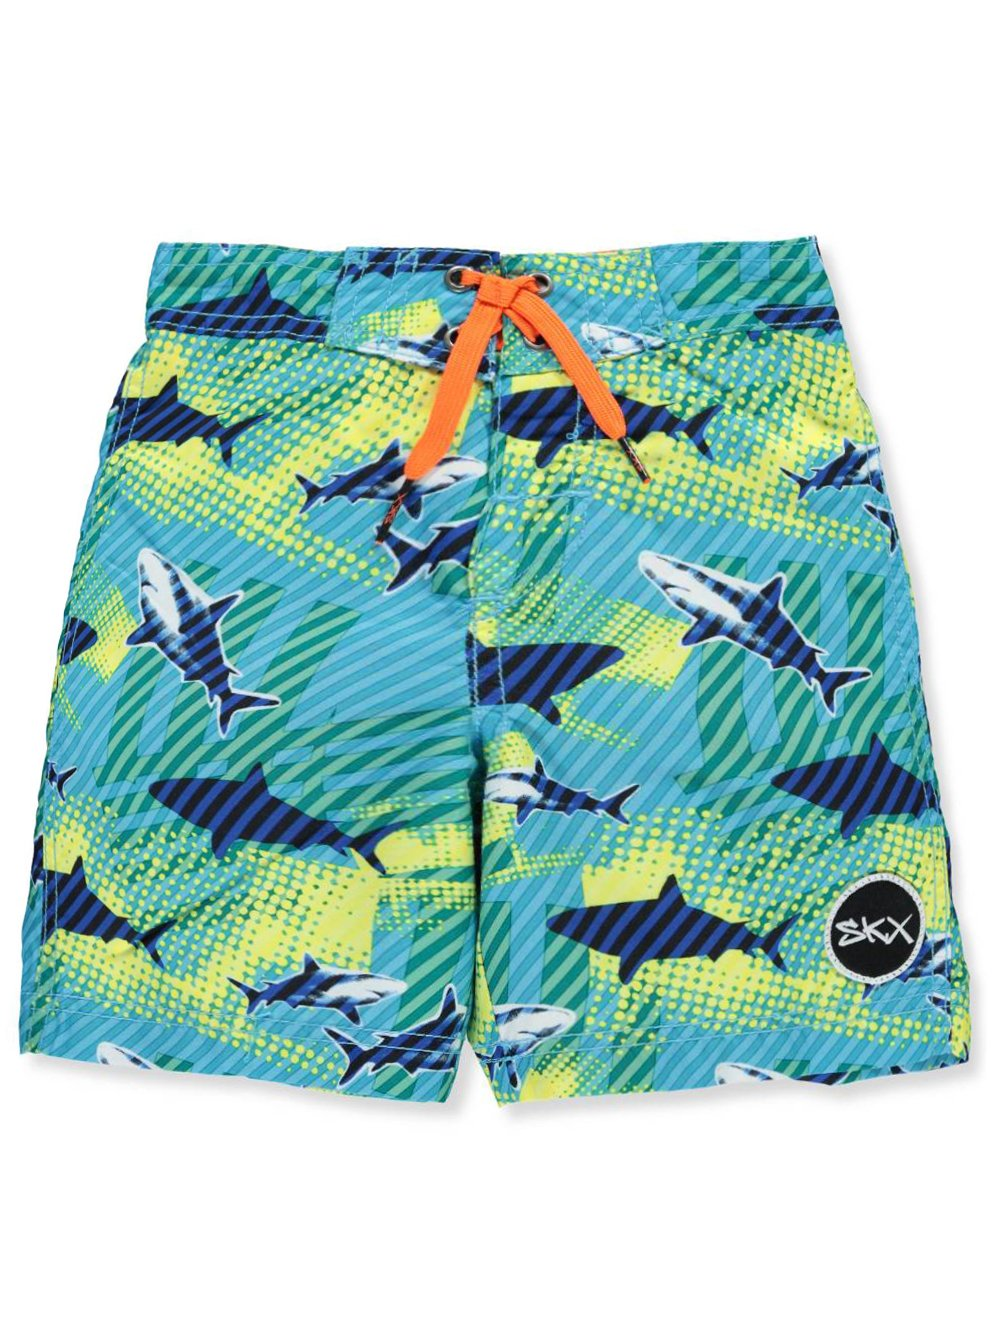 Skechers Boys' Boardshorts